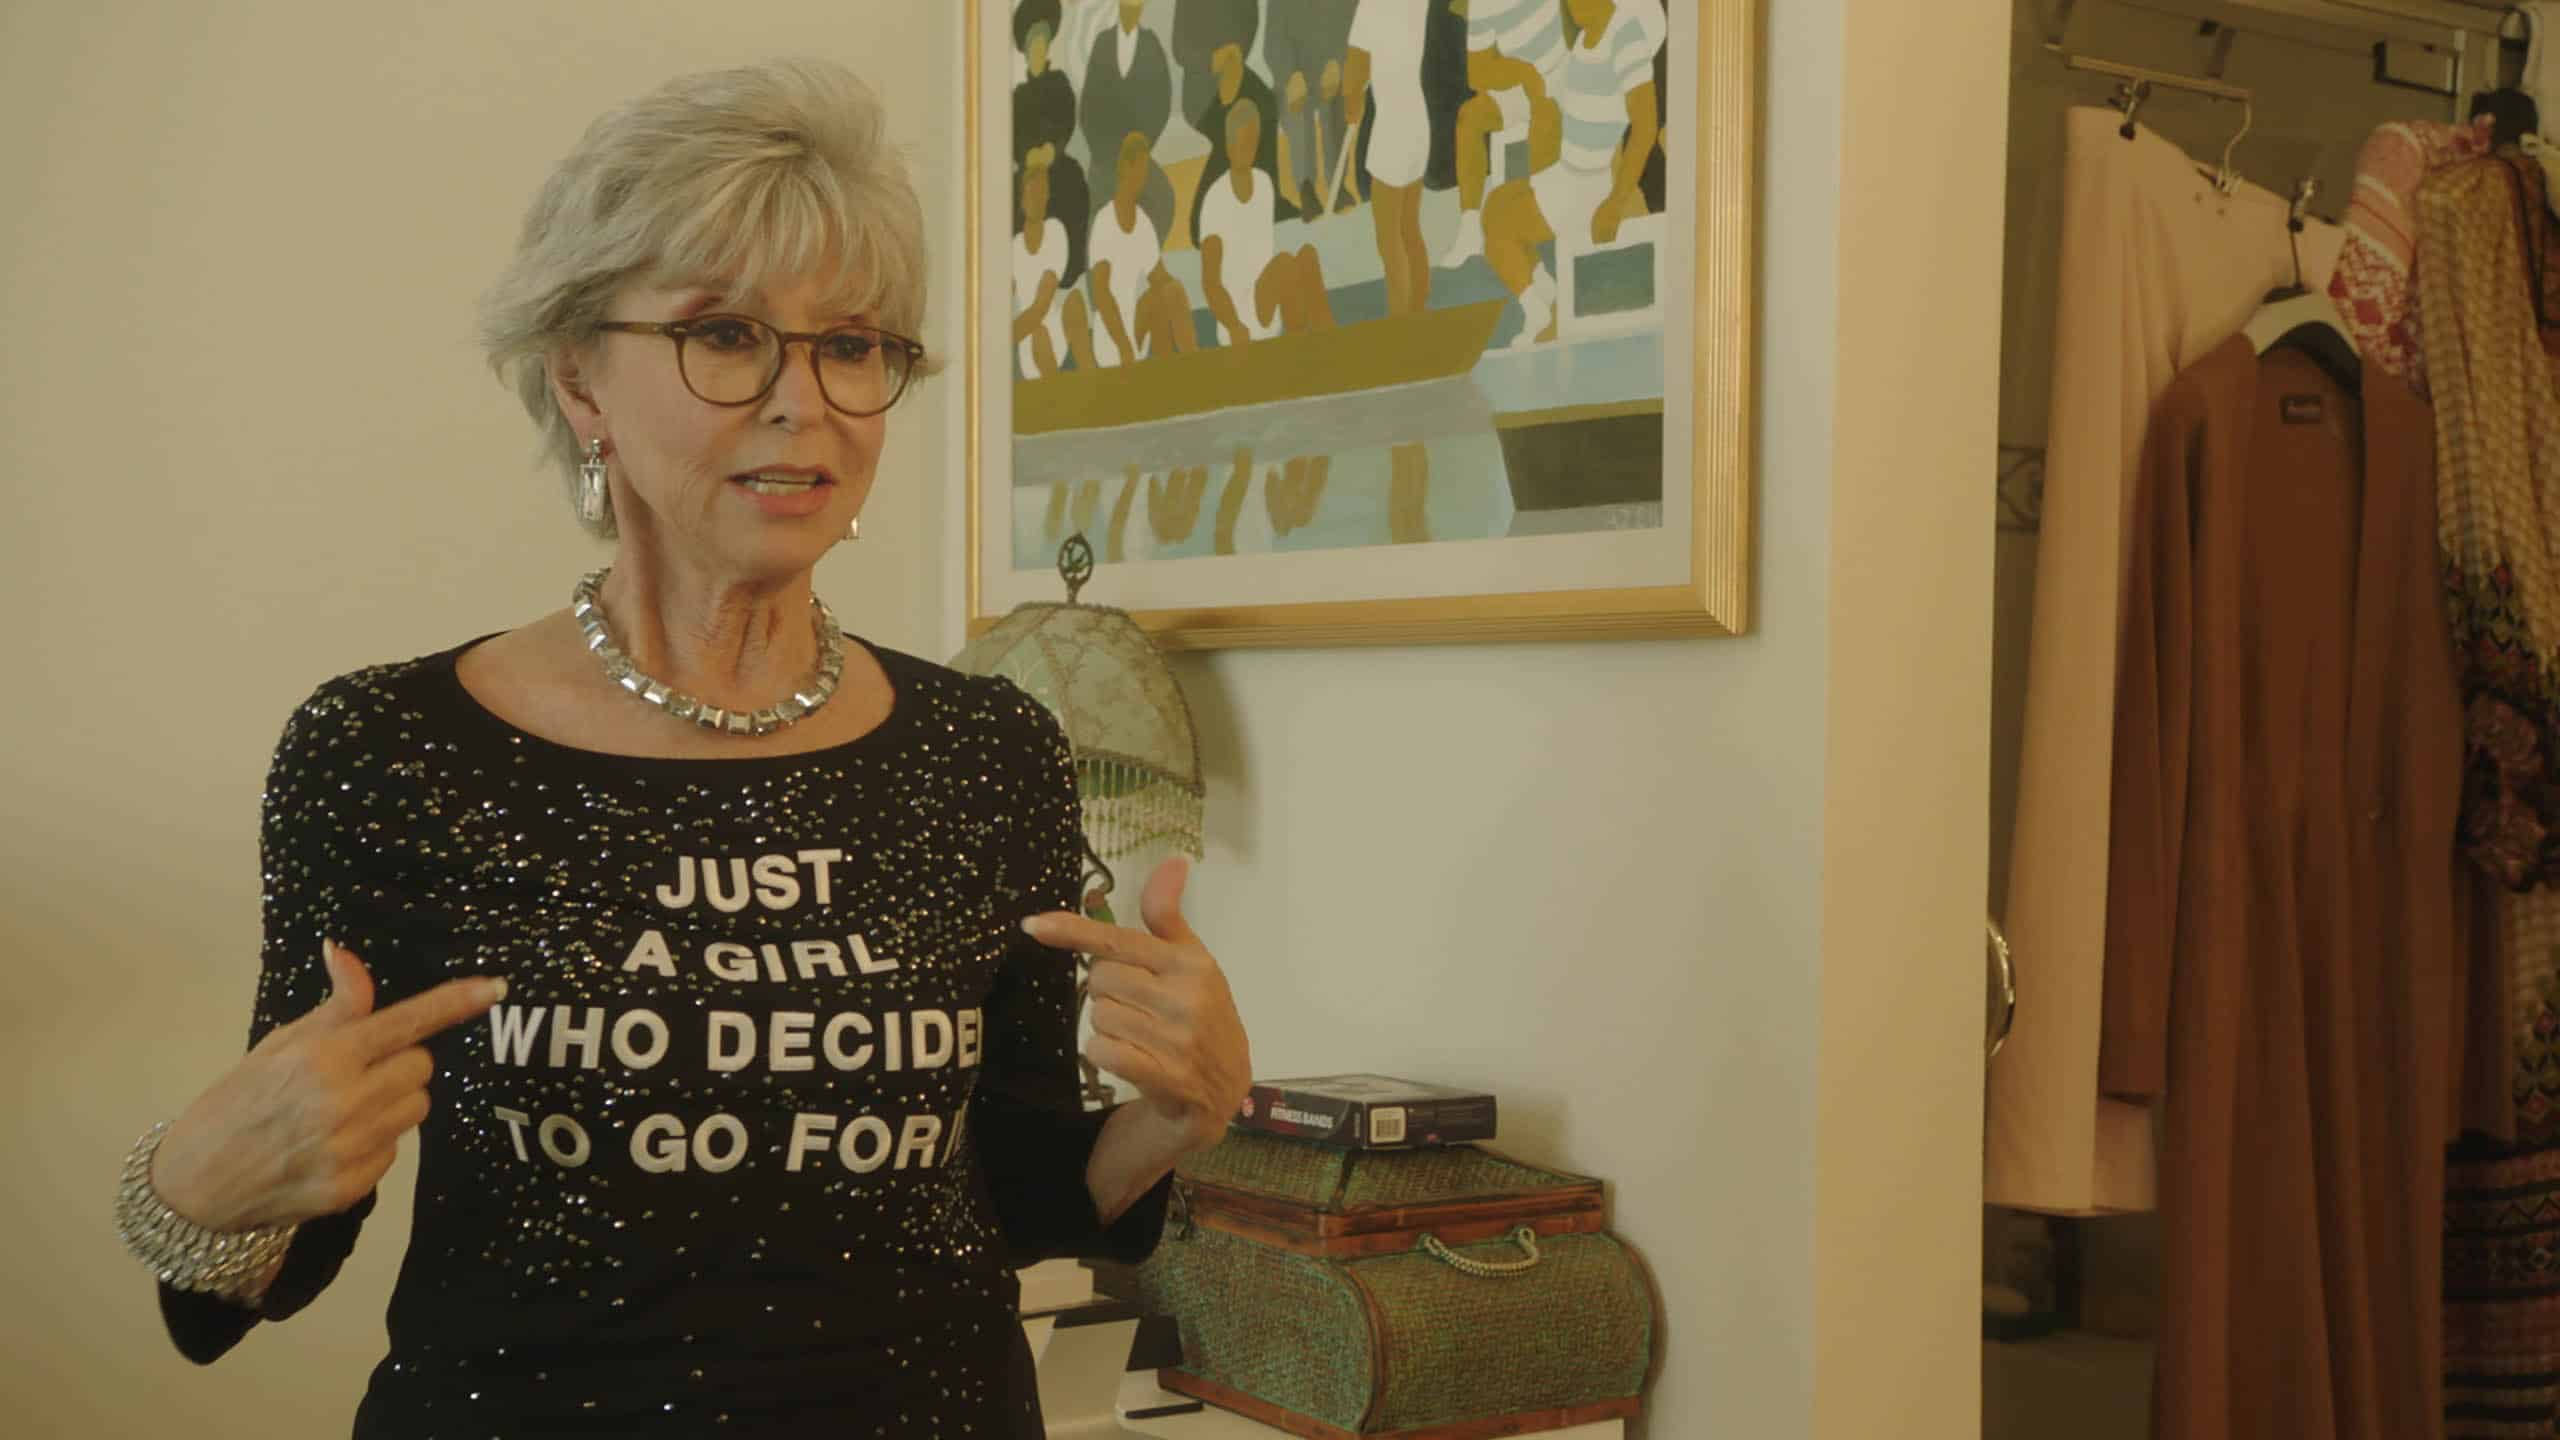 Rita Moreno with a shirt on that says the title of the movie